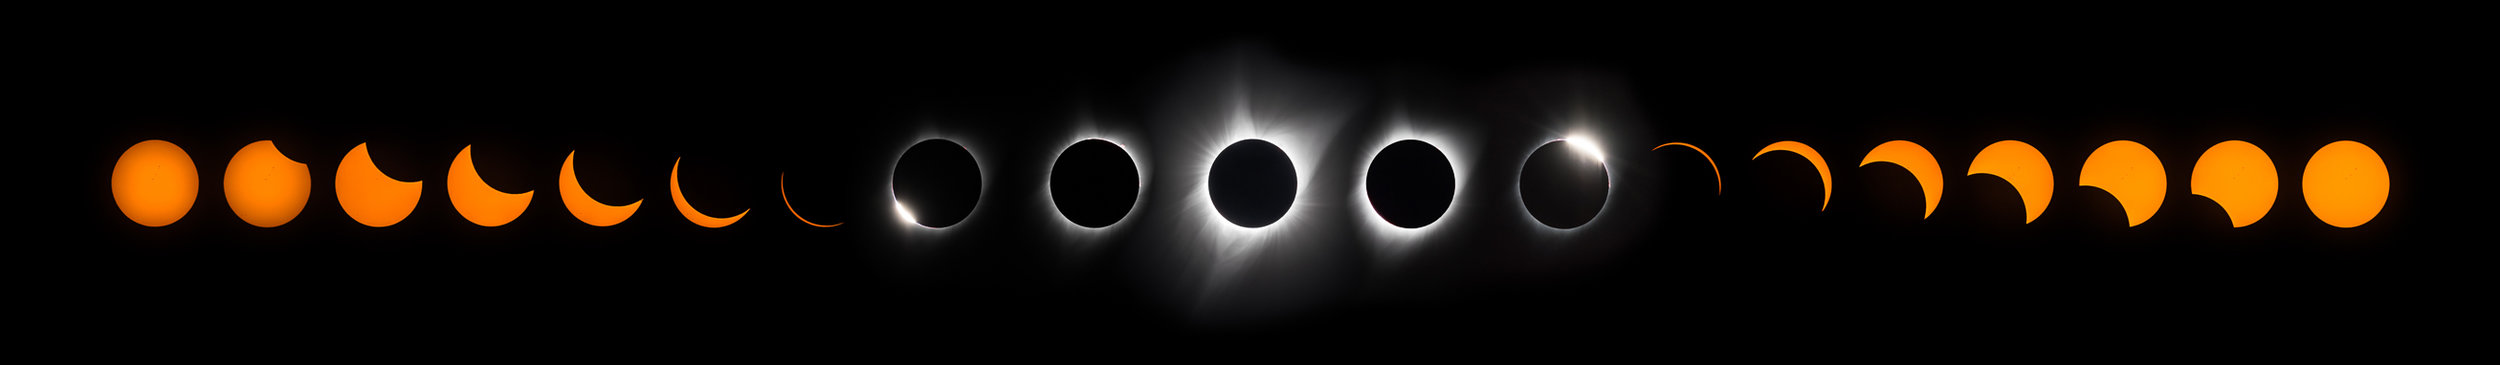 Great American Solar Eclipse -August 21, 2017